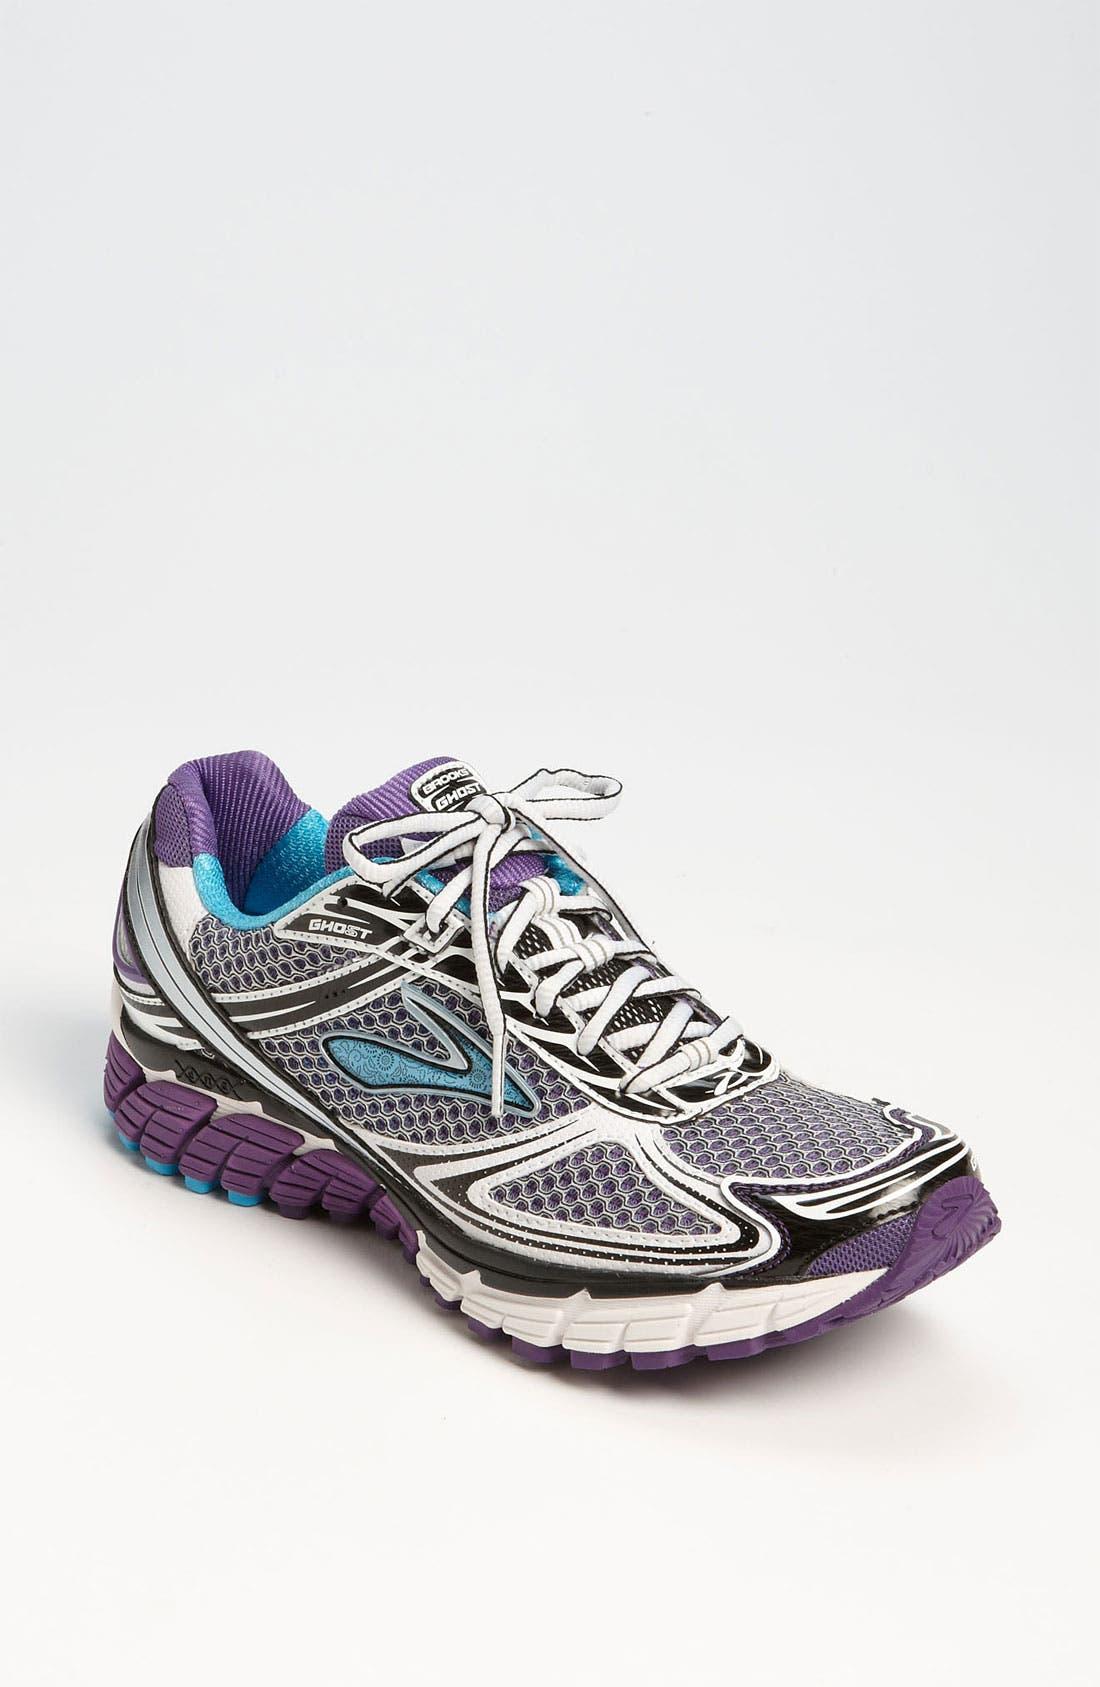 Main Image - Brooks 'Ghost 5' Running Shoe (Women) (Regular Retail Price: $109.95)